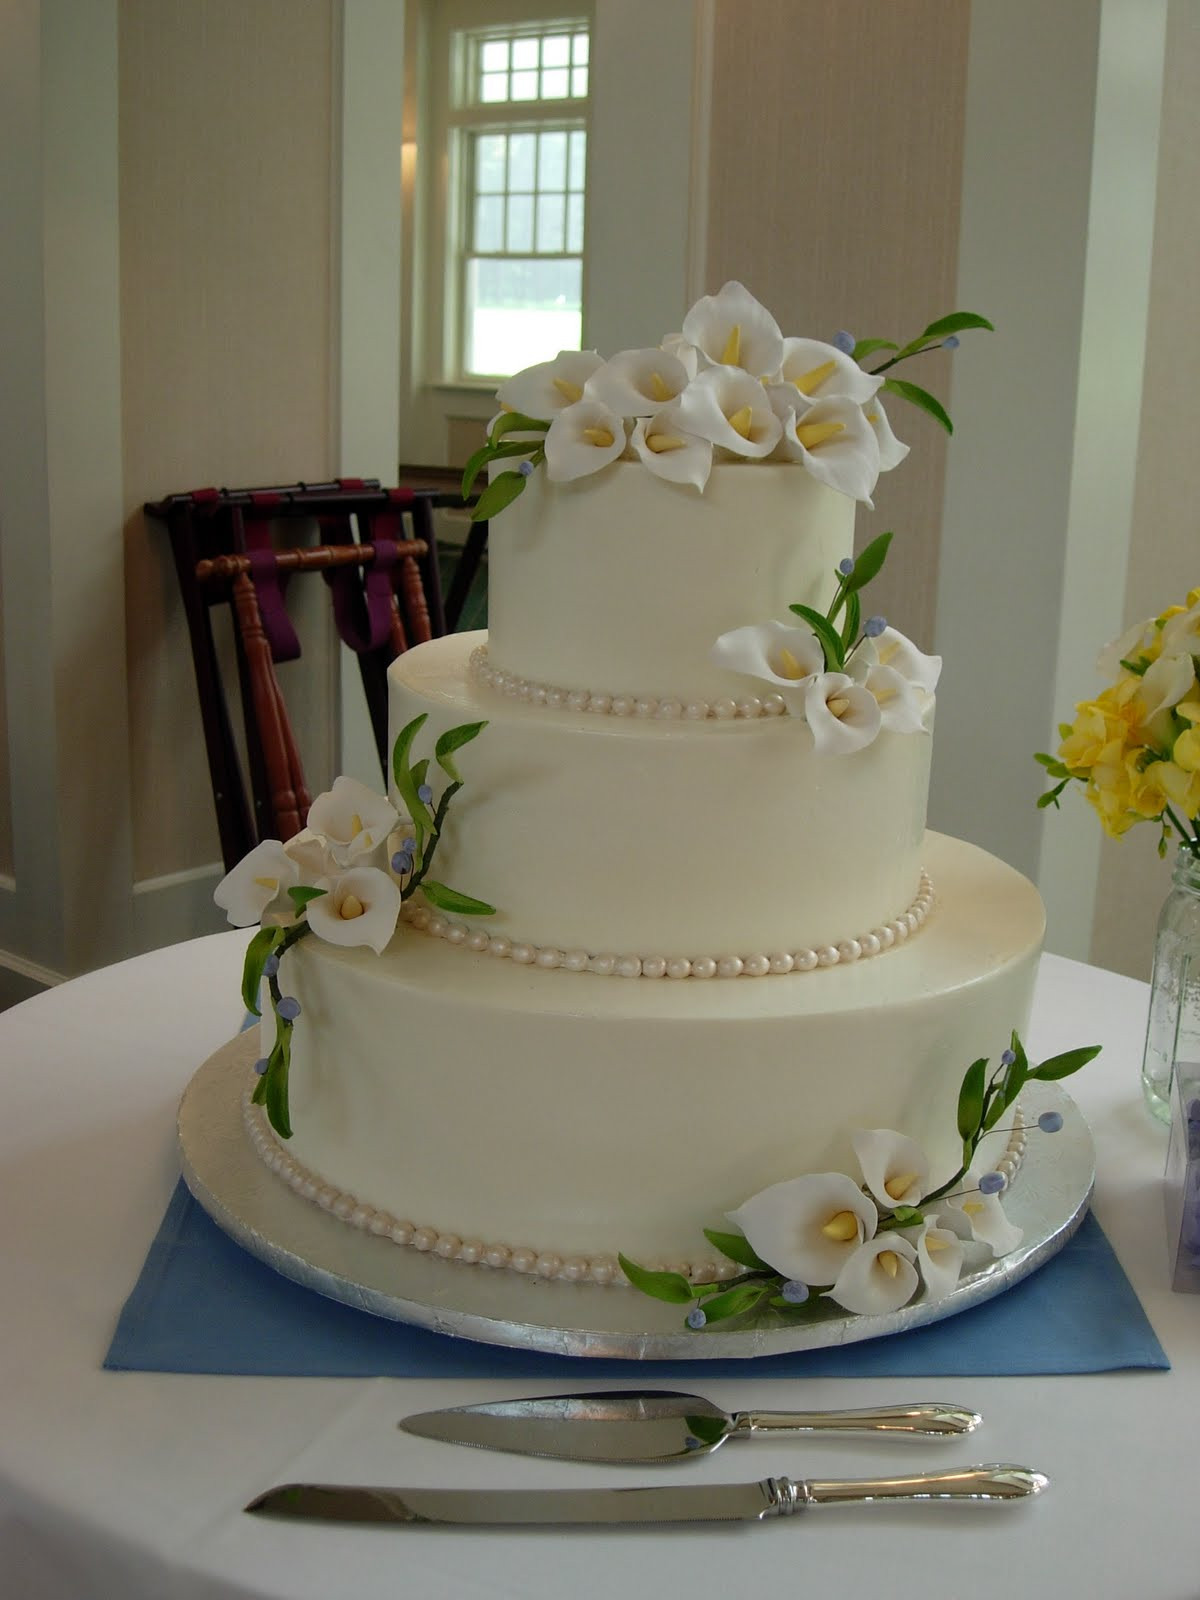 Lilly Wedding Cakes  Artisan Bake Shop Wedding Cake Buttercream Tiers with